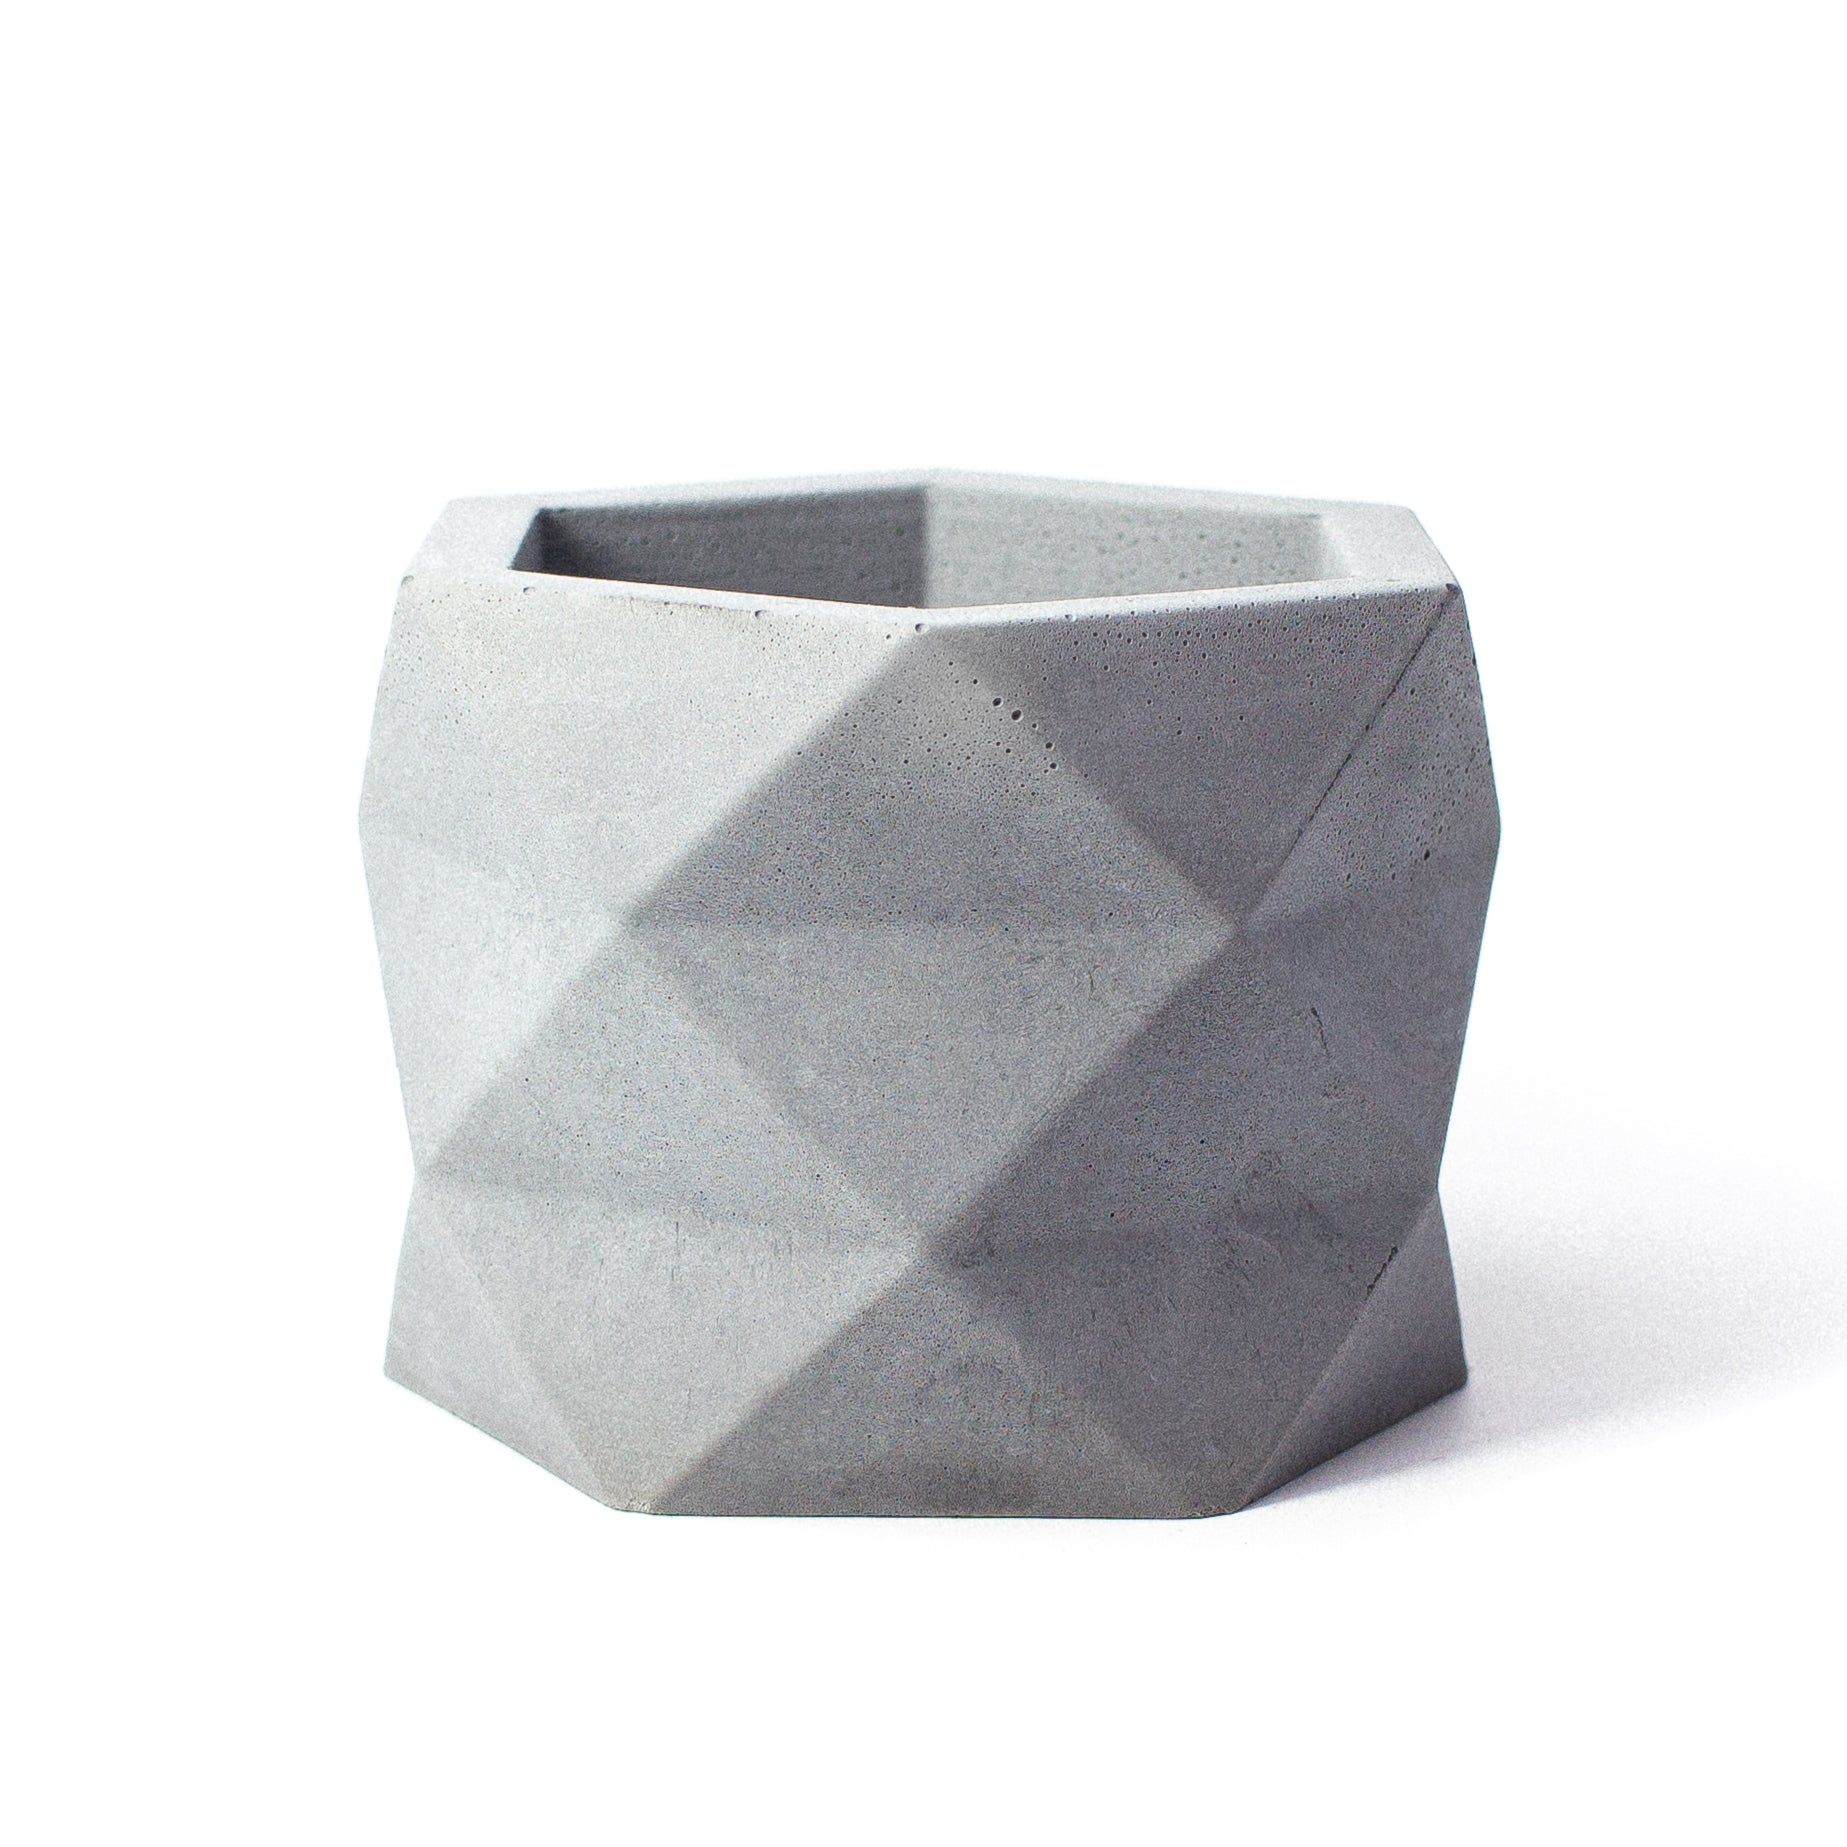 Concrete Geometric Planter: Large